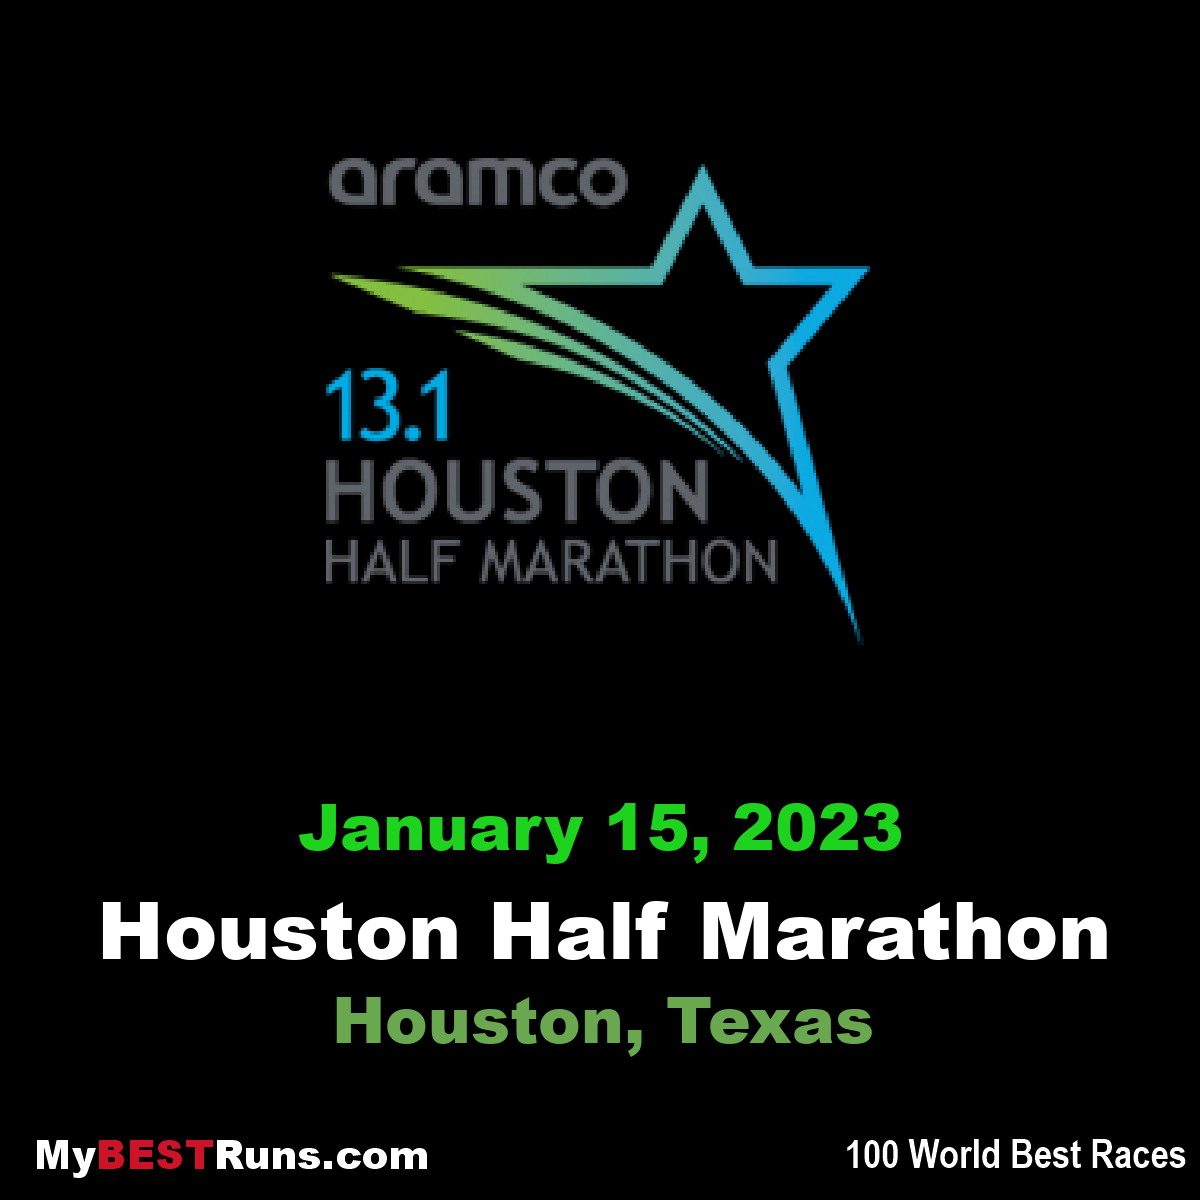 Aramco Houston Half Marathon